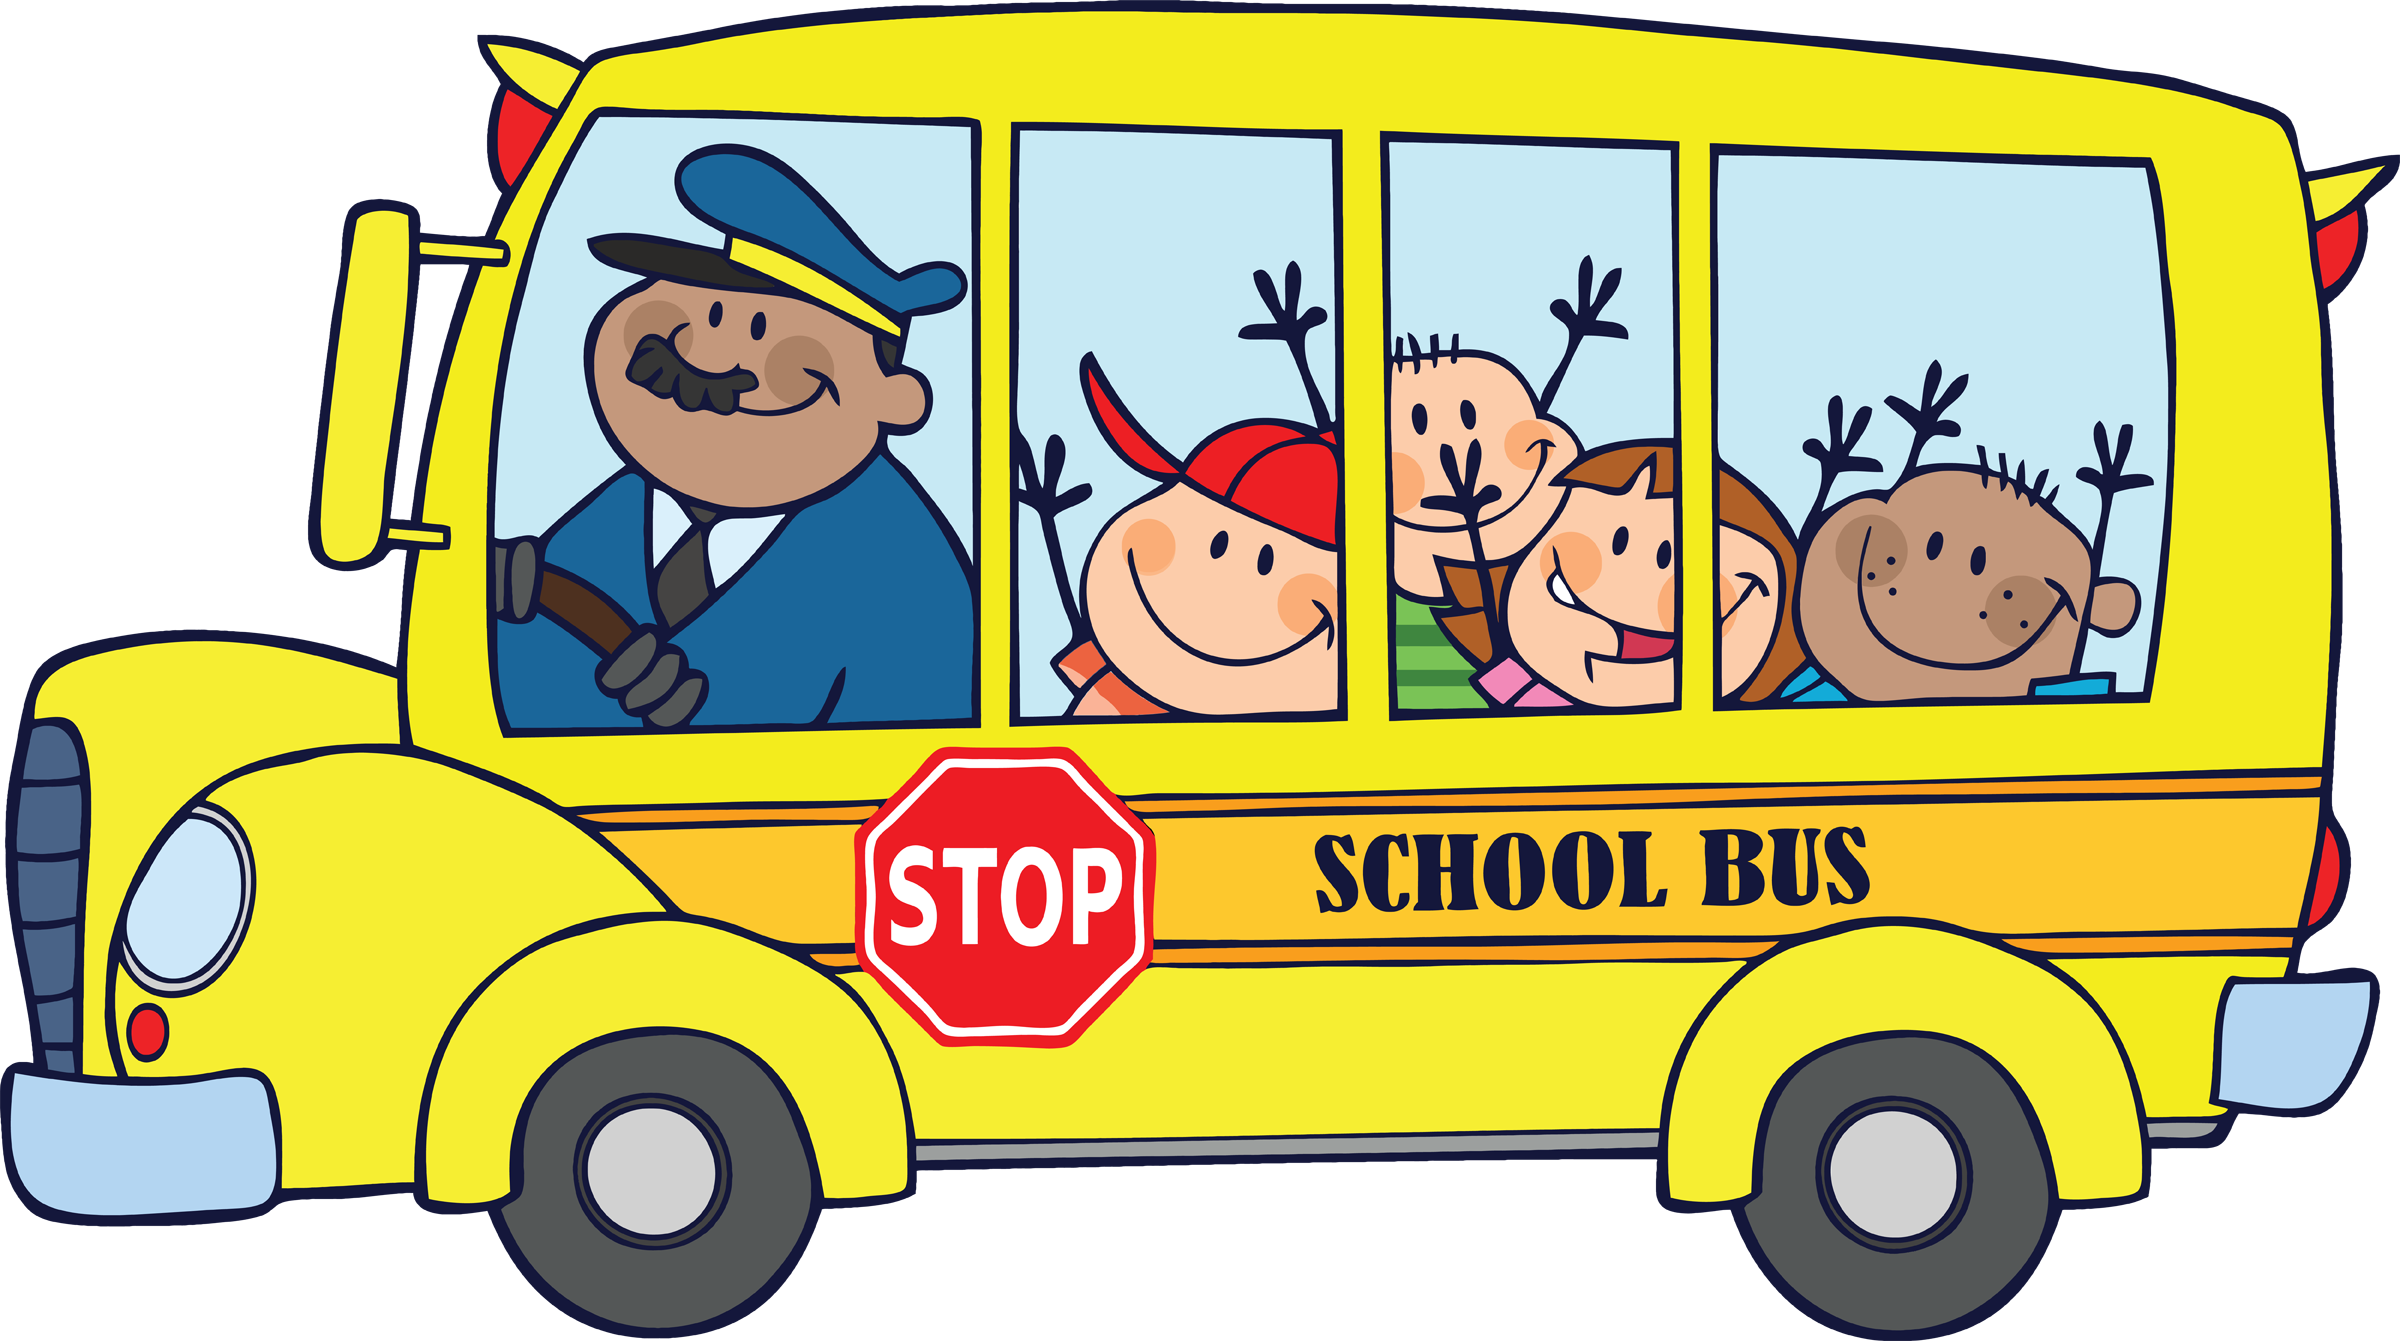 School Bus Clip Art For Kids   Clipart Panda   Free Clipart Images